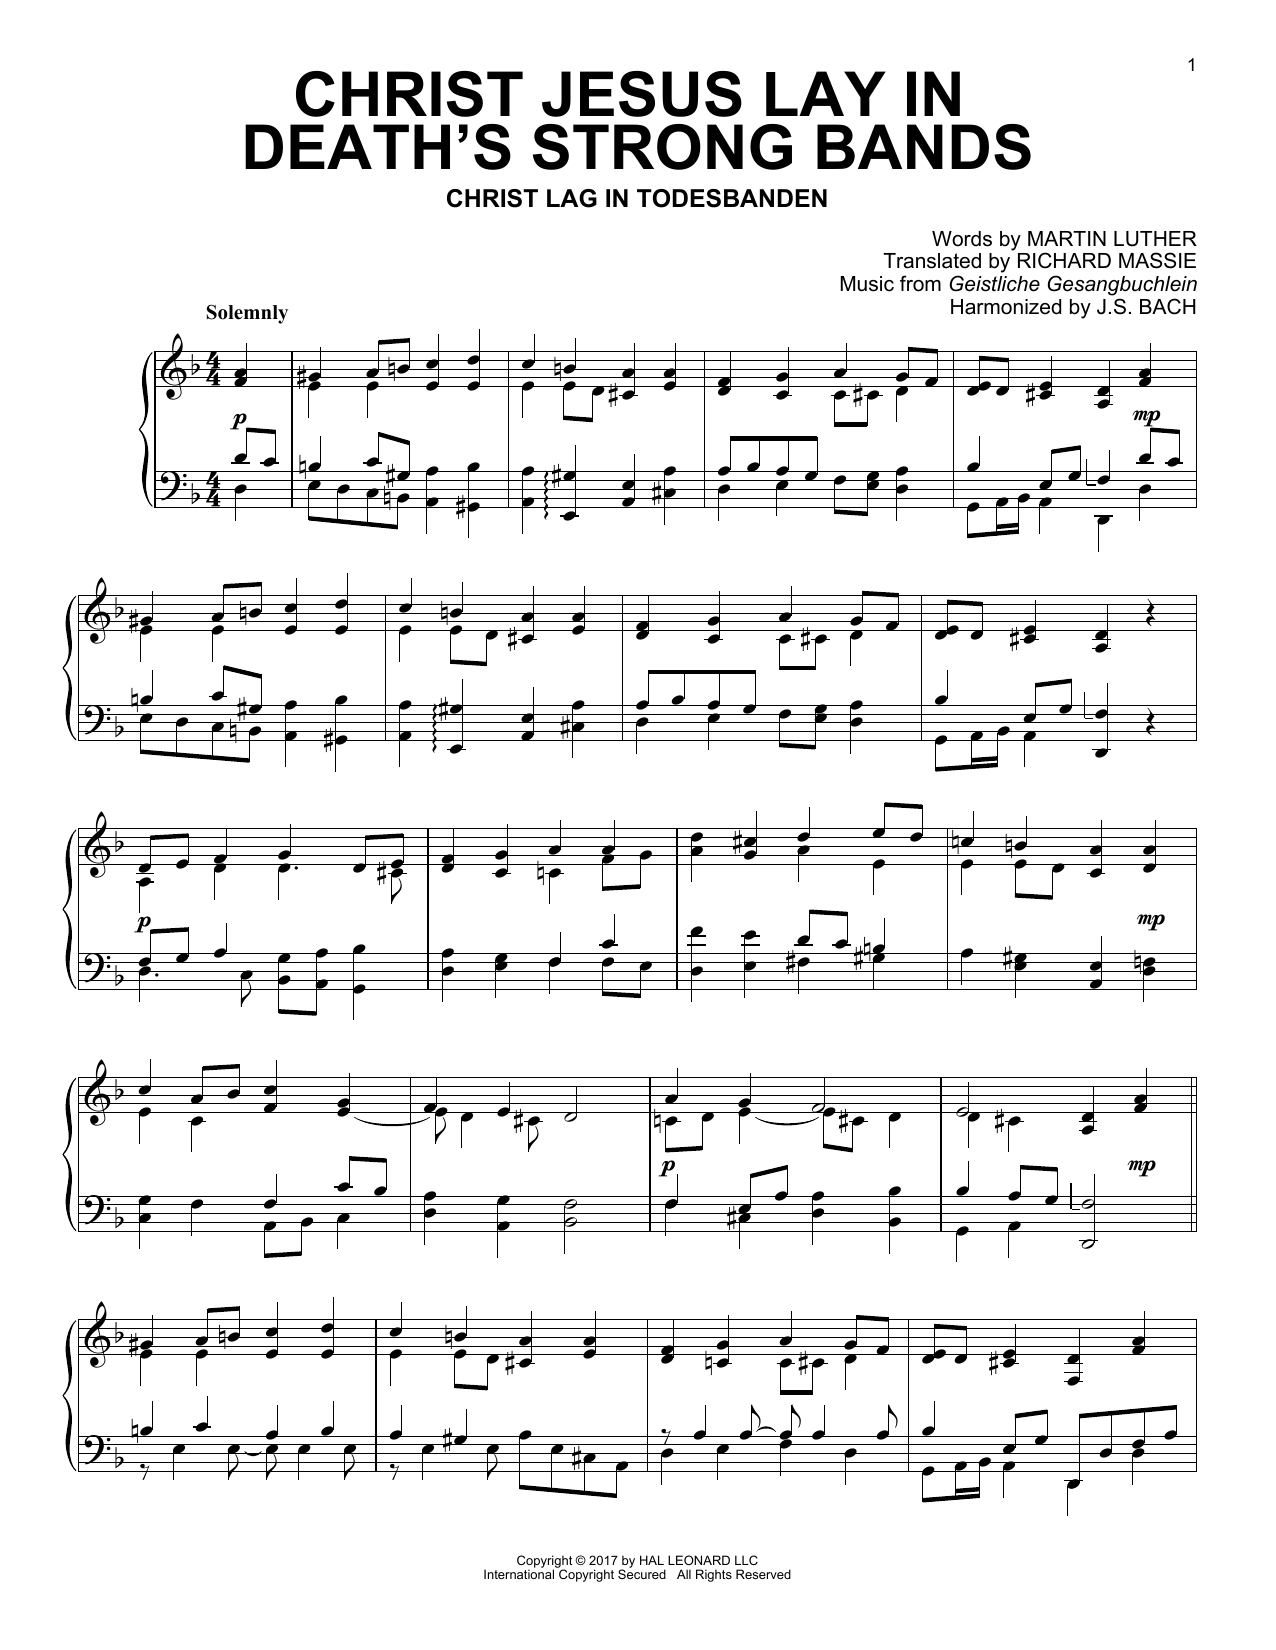 Geistliche Gesangbuchlein Christ Jesus Lay In Death's Strong Bands sheet music notes and chords